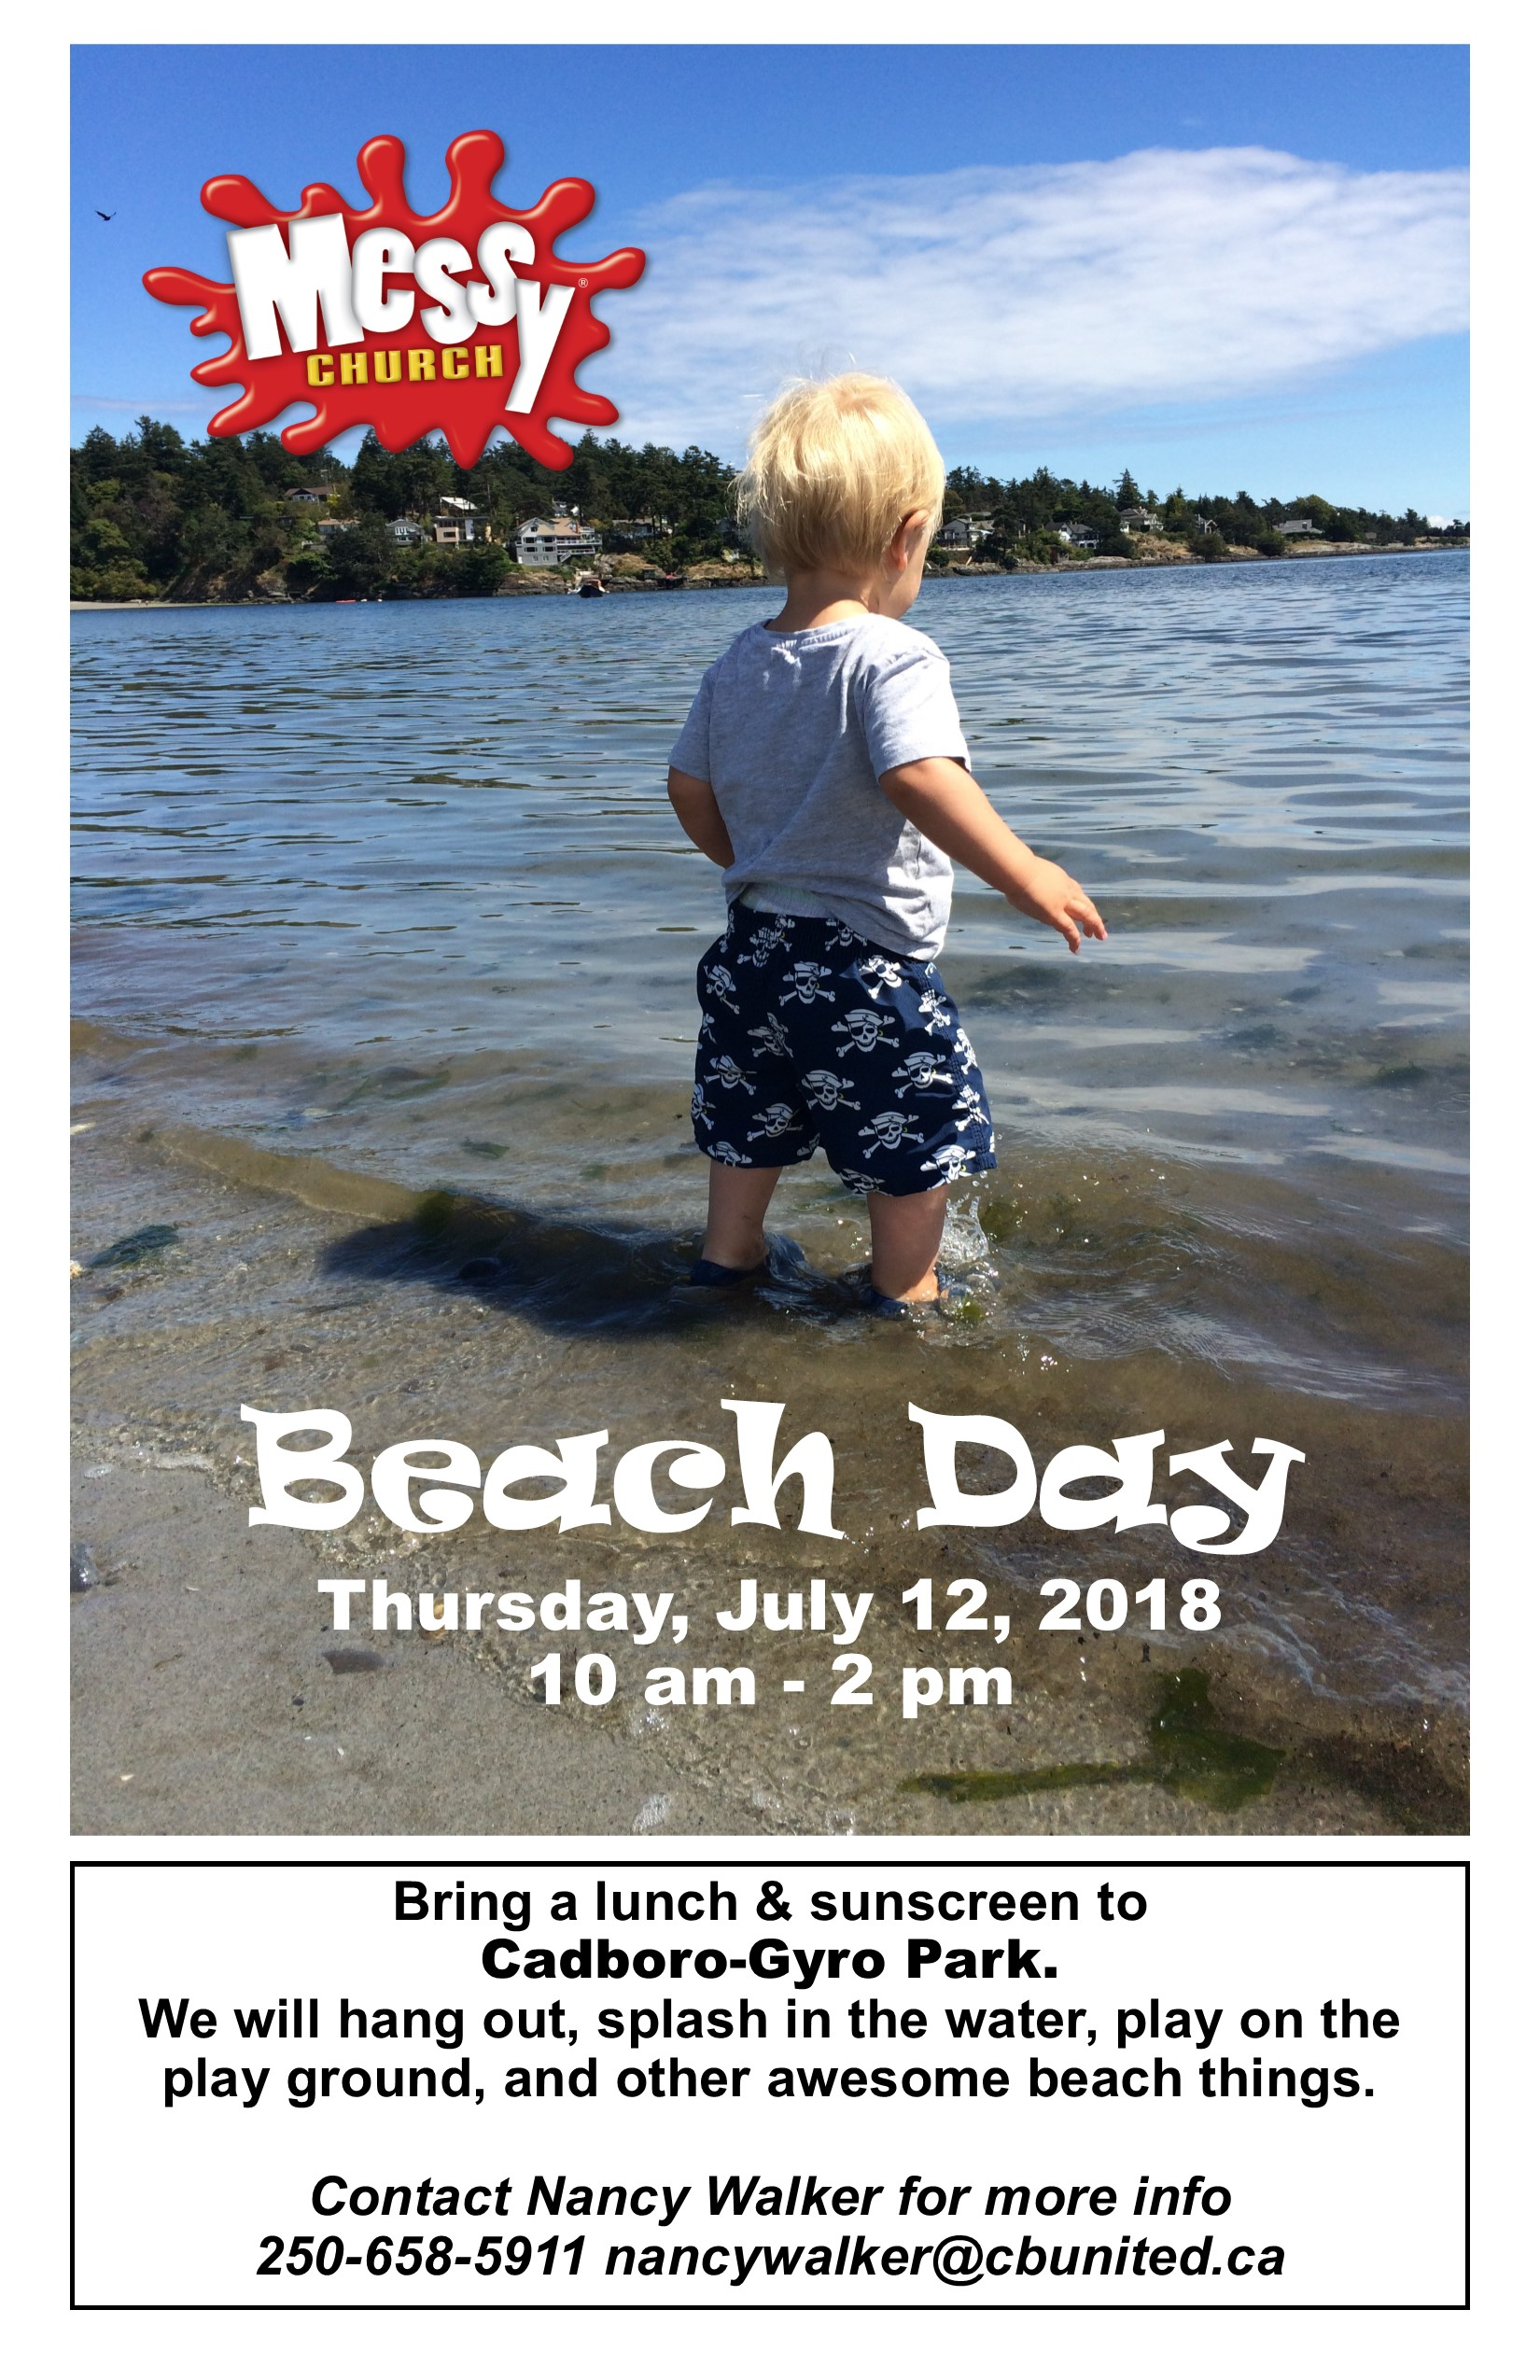 Messy Church Beach Day Ledger 2018